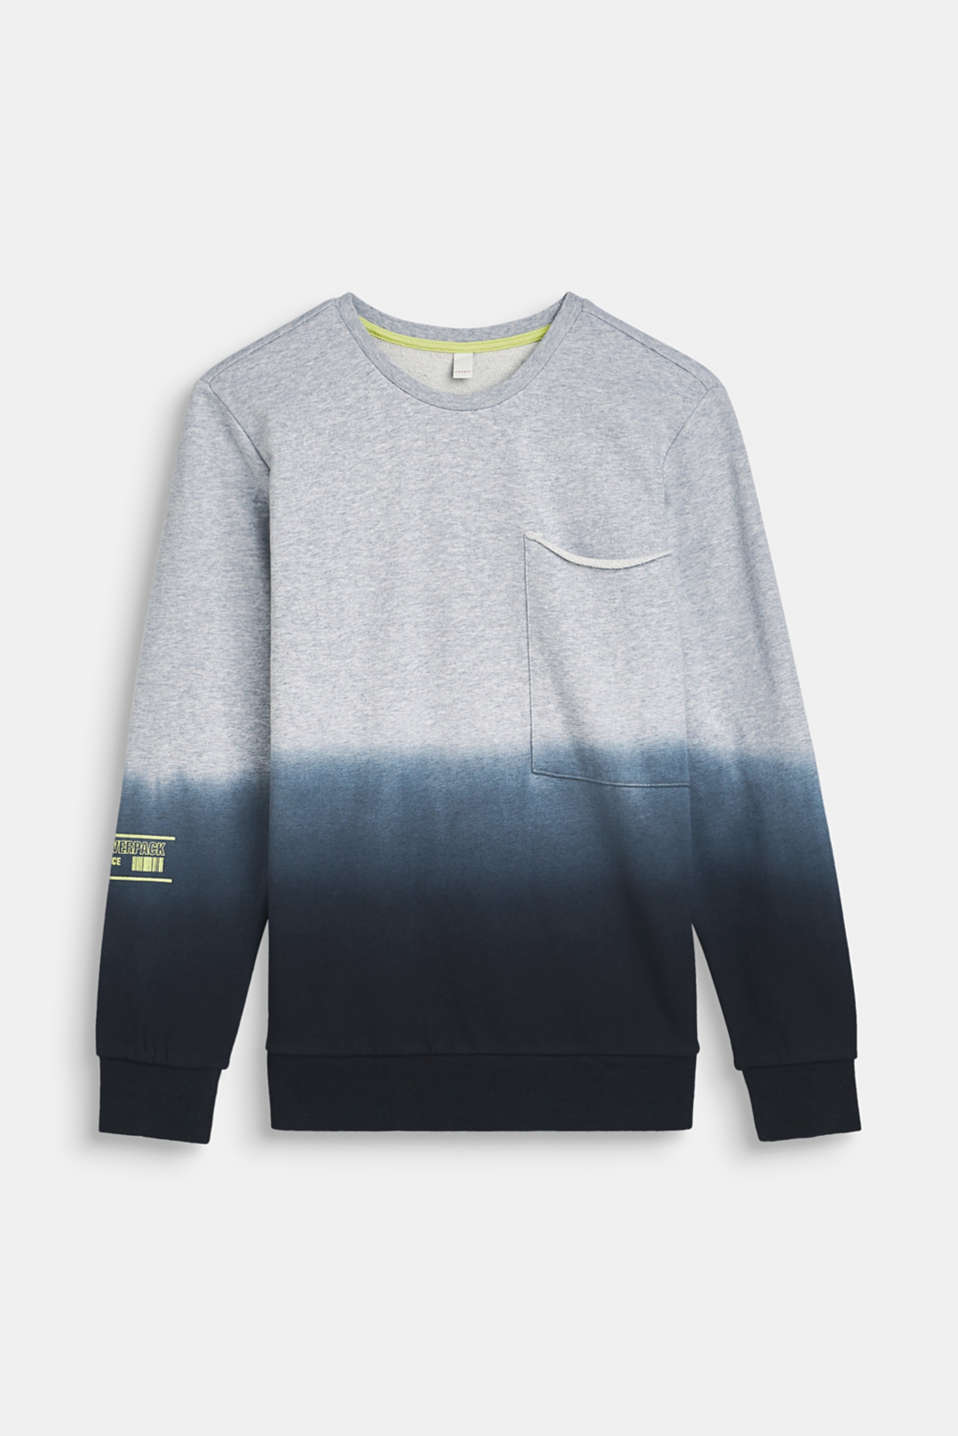 Esprit - Dip-dye sweatshirt made of 100% cotton